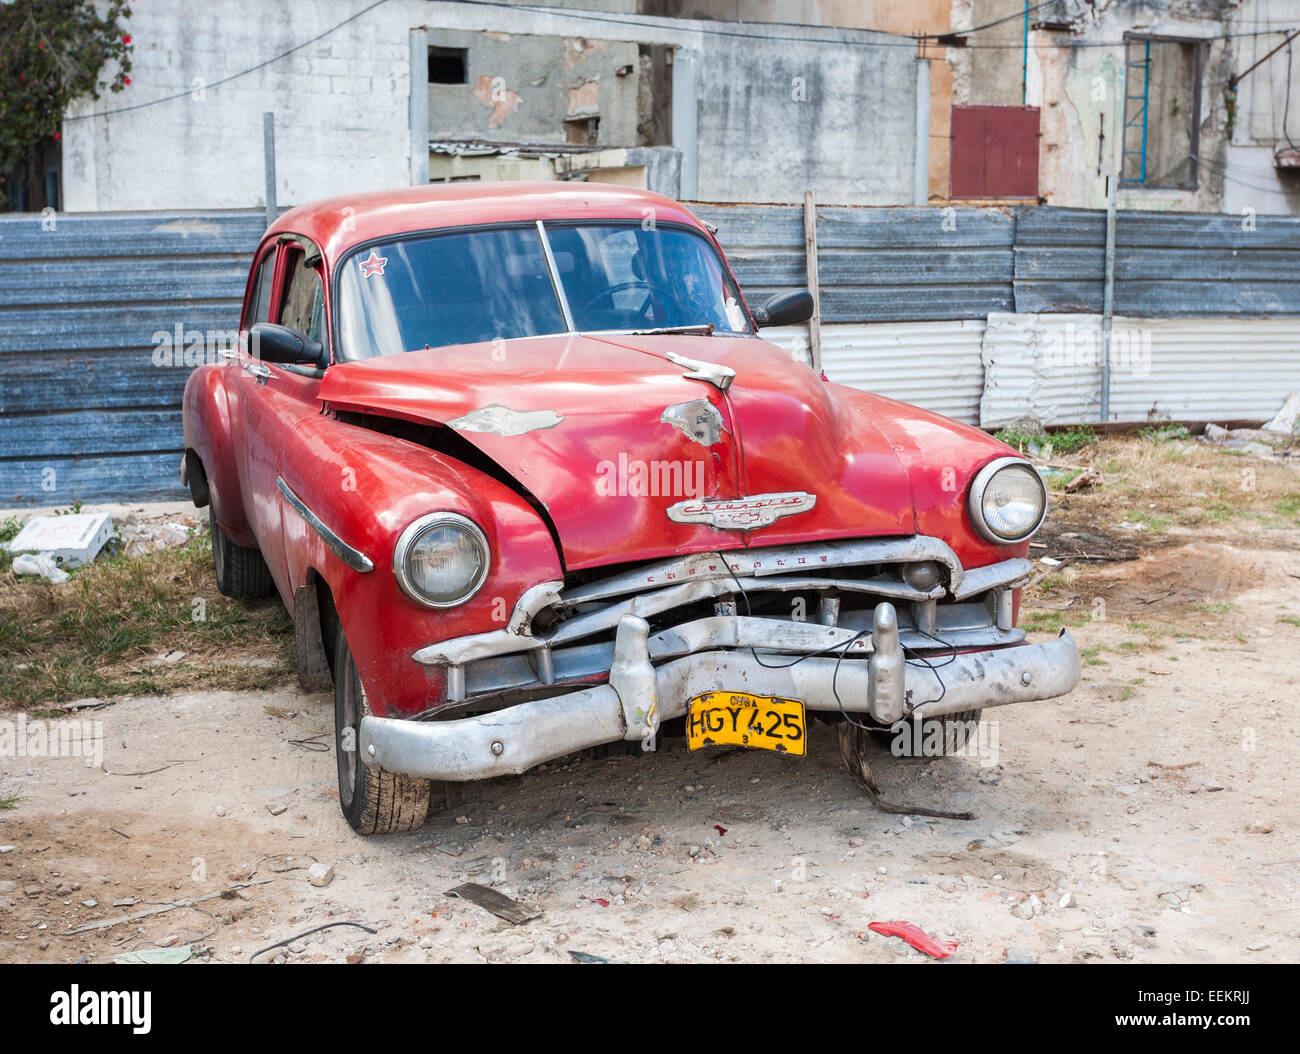 Vintage, collision damaged post-accident classic red Chevrolet parked off-road in downtown Havana, capital city - Stock Image